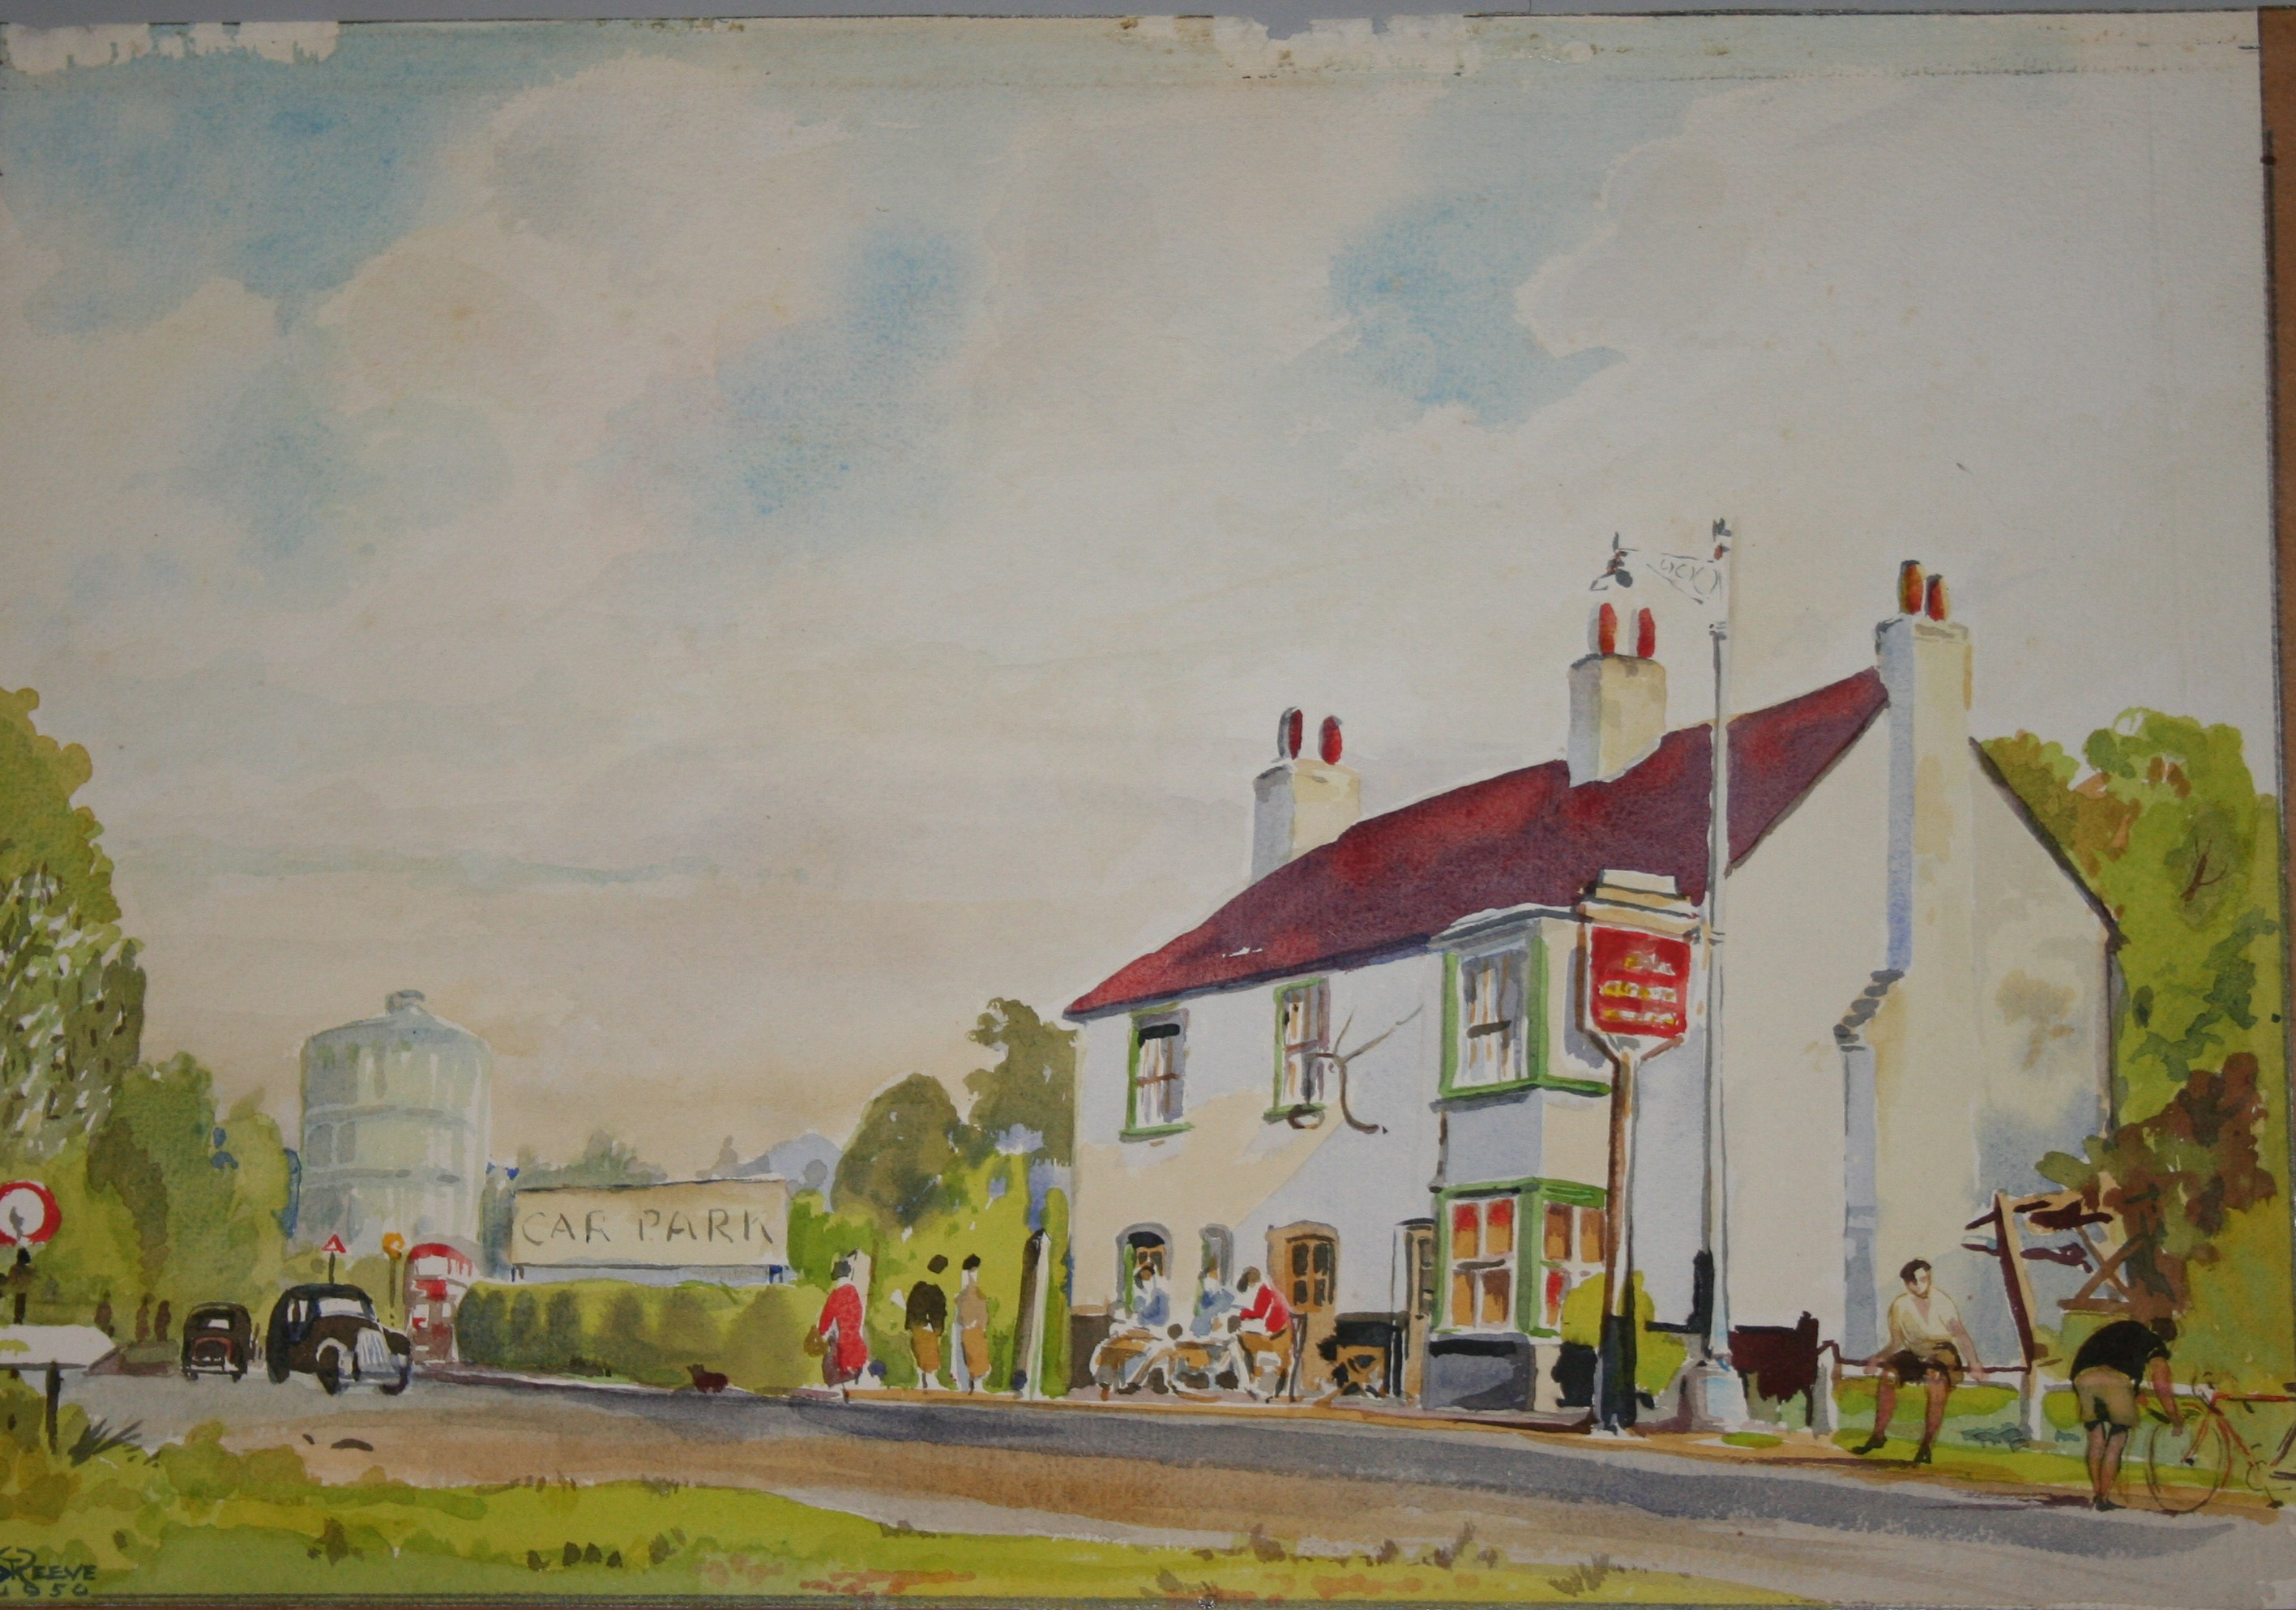 "The Coach and Horses"" inn at Egham by Stan T.Reeve, 1950"